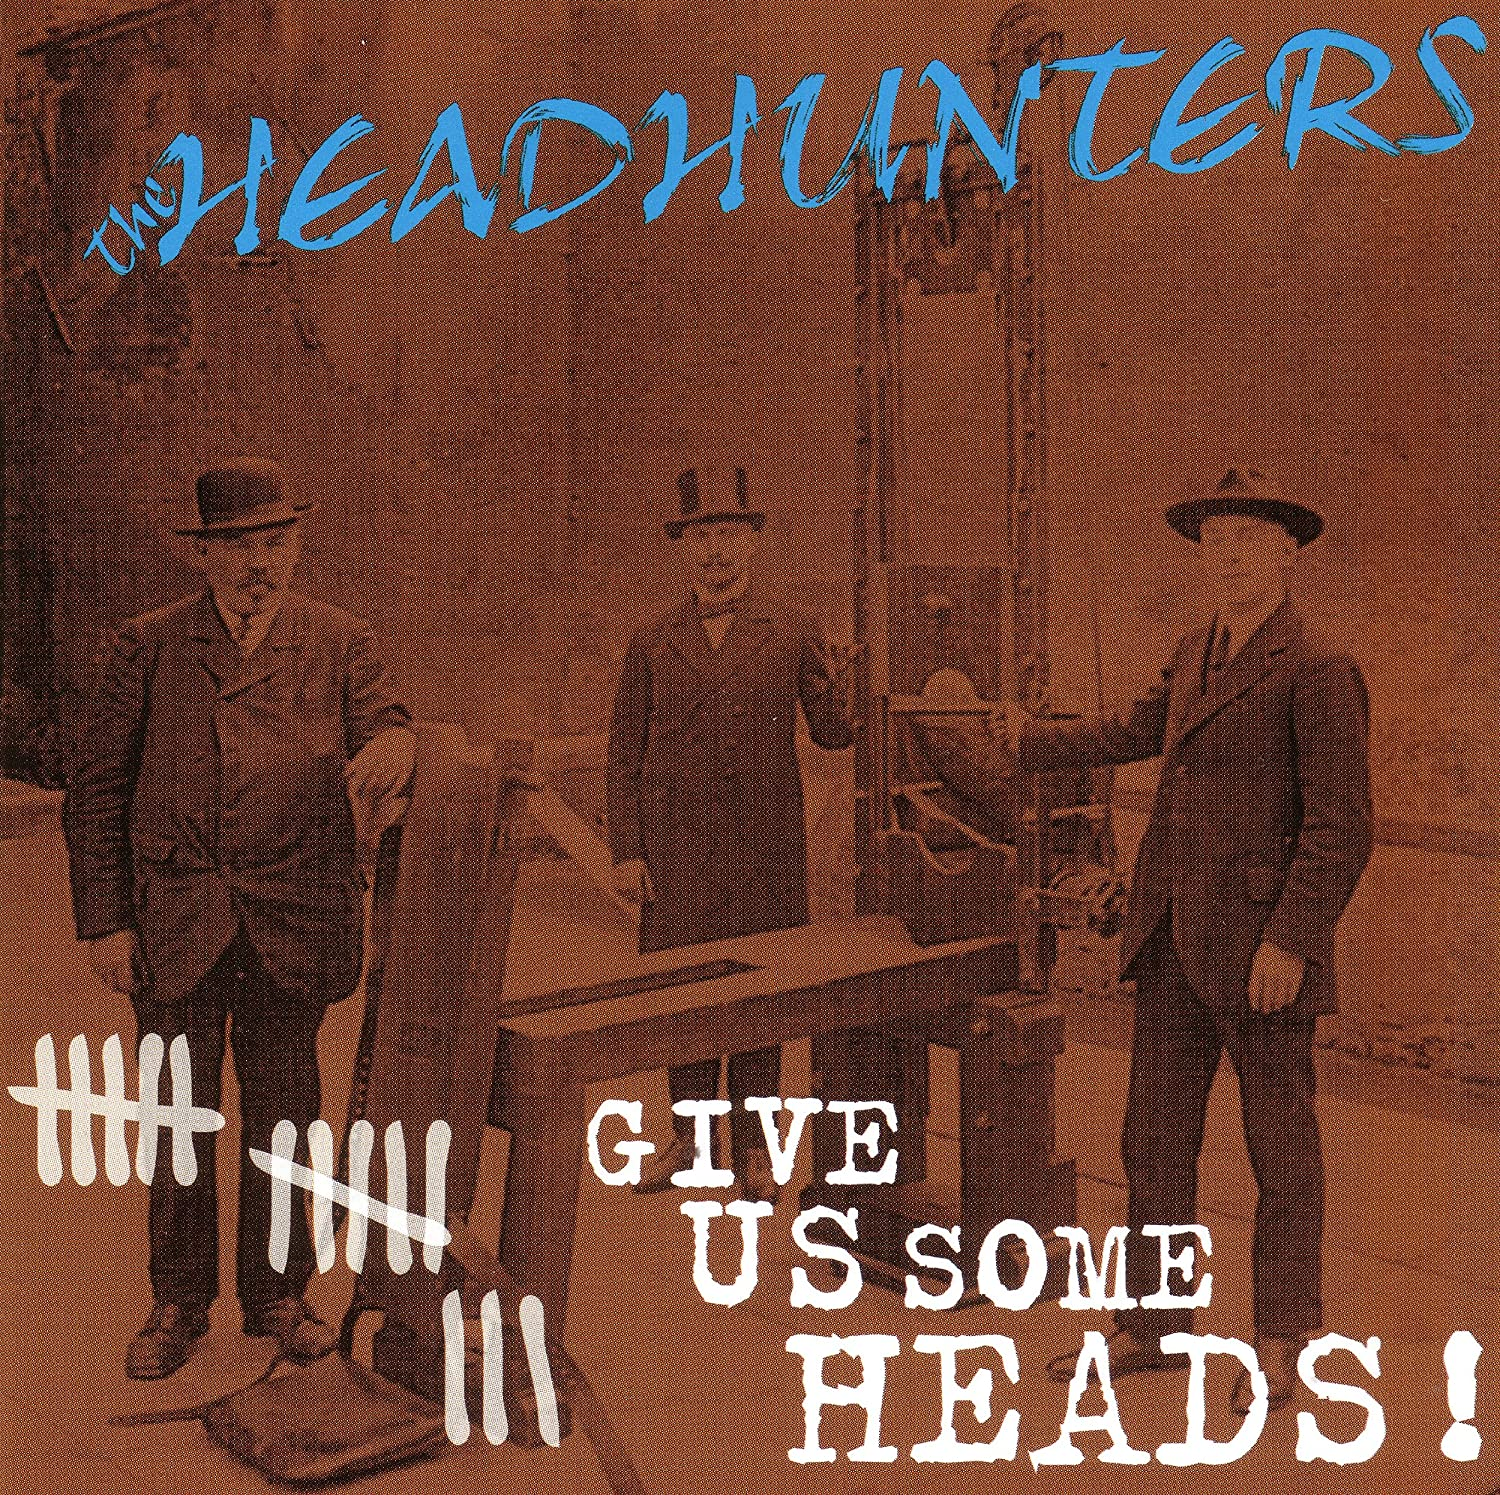 Headhunters The - Give us some heads CD